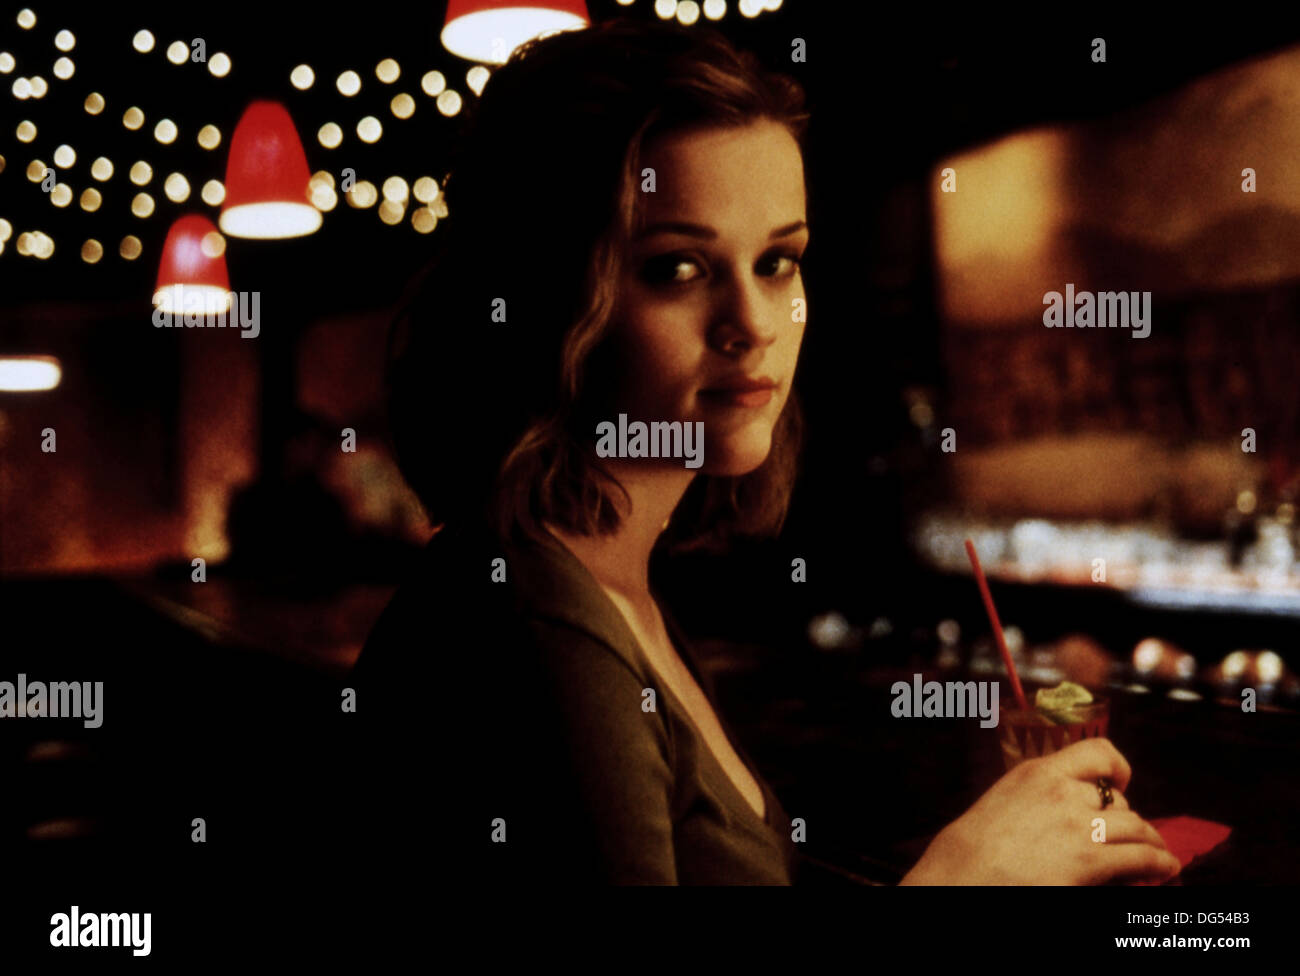 BEST LAID PLANS 1999) REESE WITHERSPOON, MIKE BARKER DIR) BLPL 006 MOVIESTORE COLLECTION LTD - Stock Image